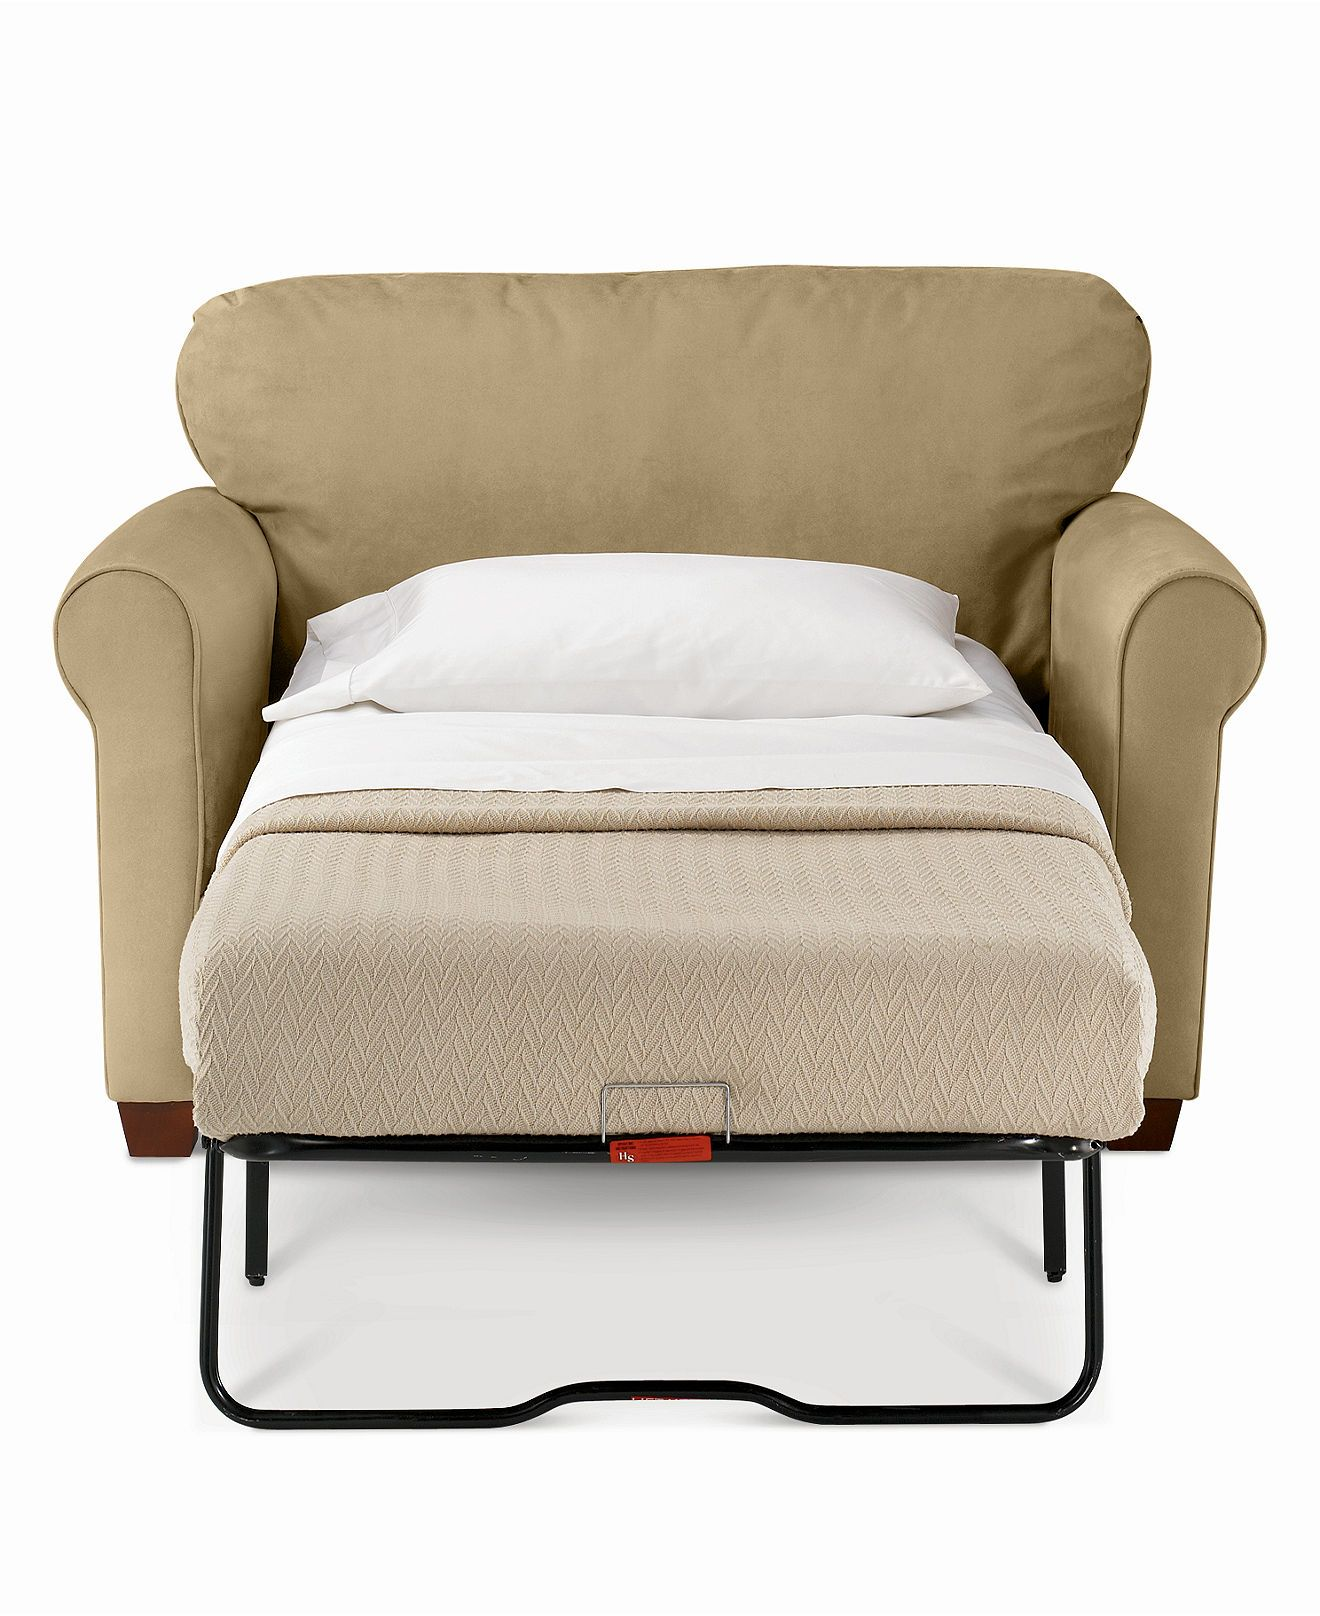 If All Your Couches Are Beds Everyone Could Stay Over No Need For A Spare Room 699 R Tiny House Furniture Sleeper Chair Bed Twin Sleeper Chair